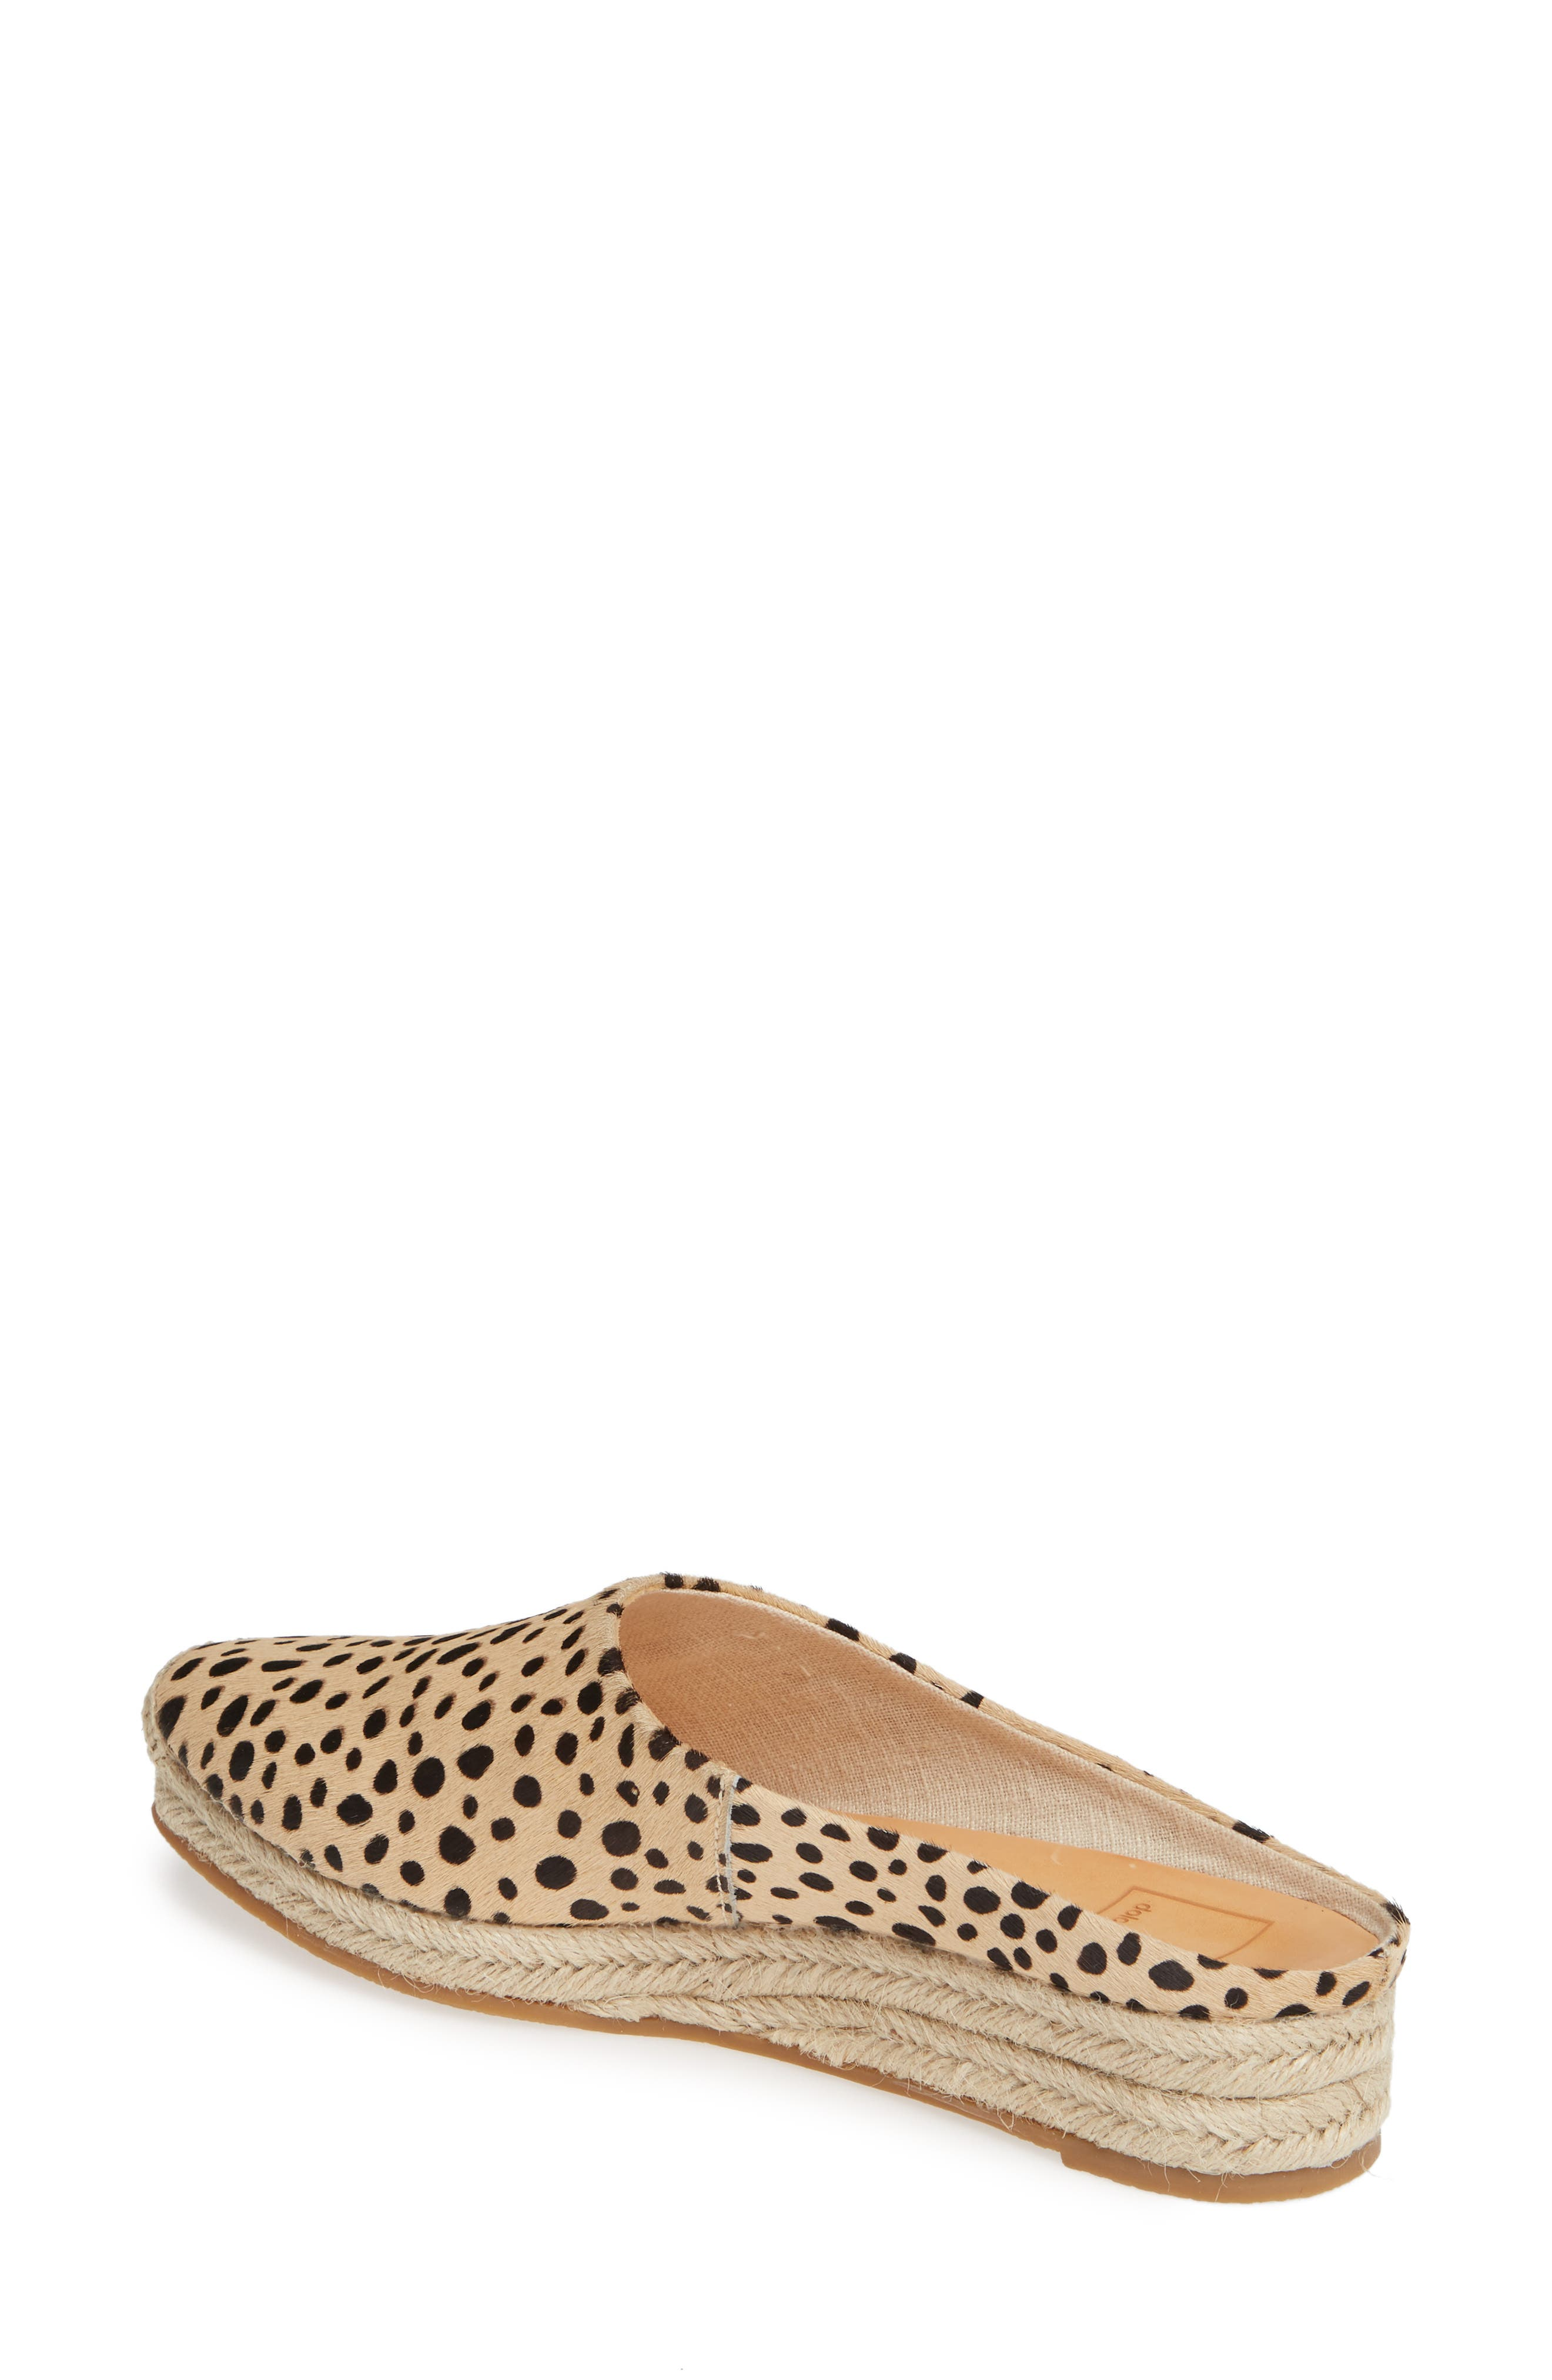 DOLCE VITA, Brandi Genuine Calf Hair Espadrille Mule, Alternate thumbnail 2, color, LEOPARD PRINT CALF HAIR